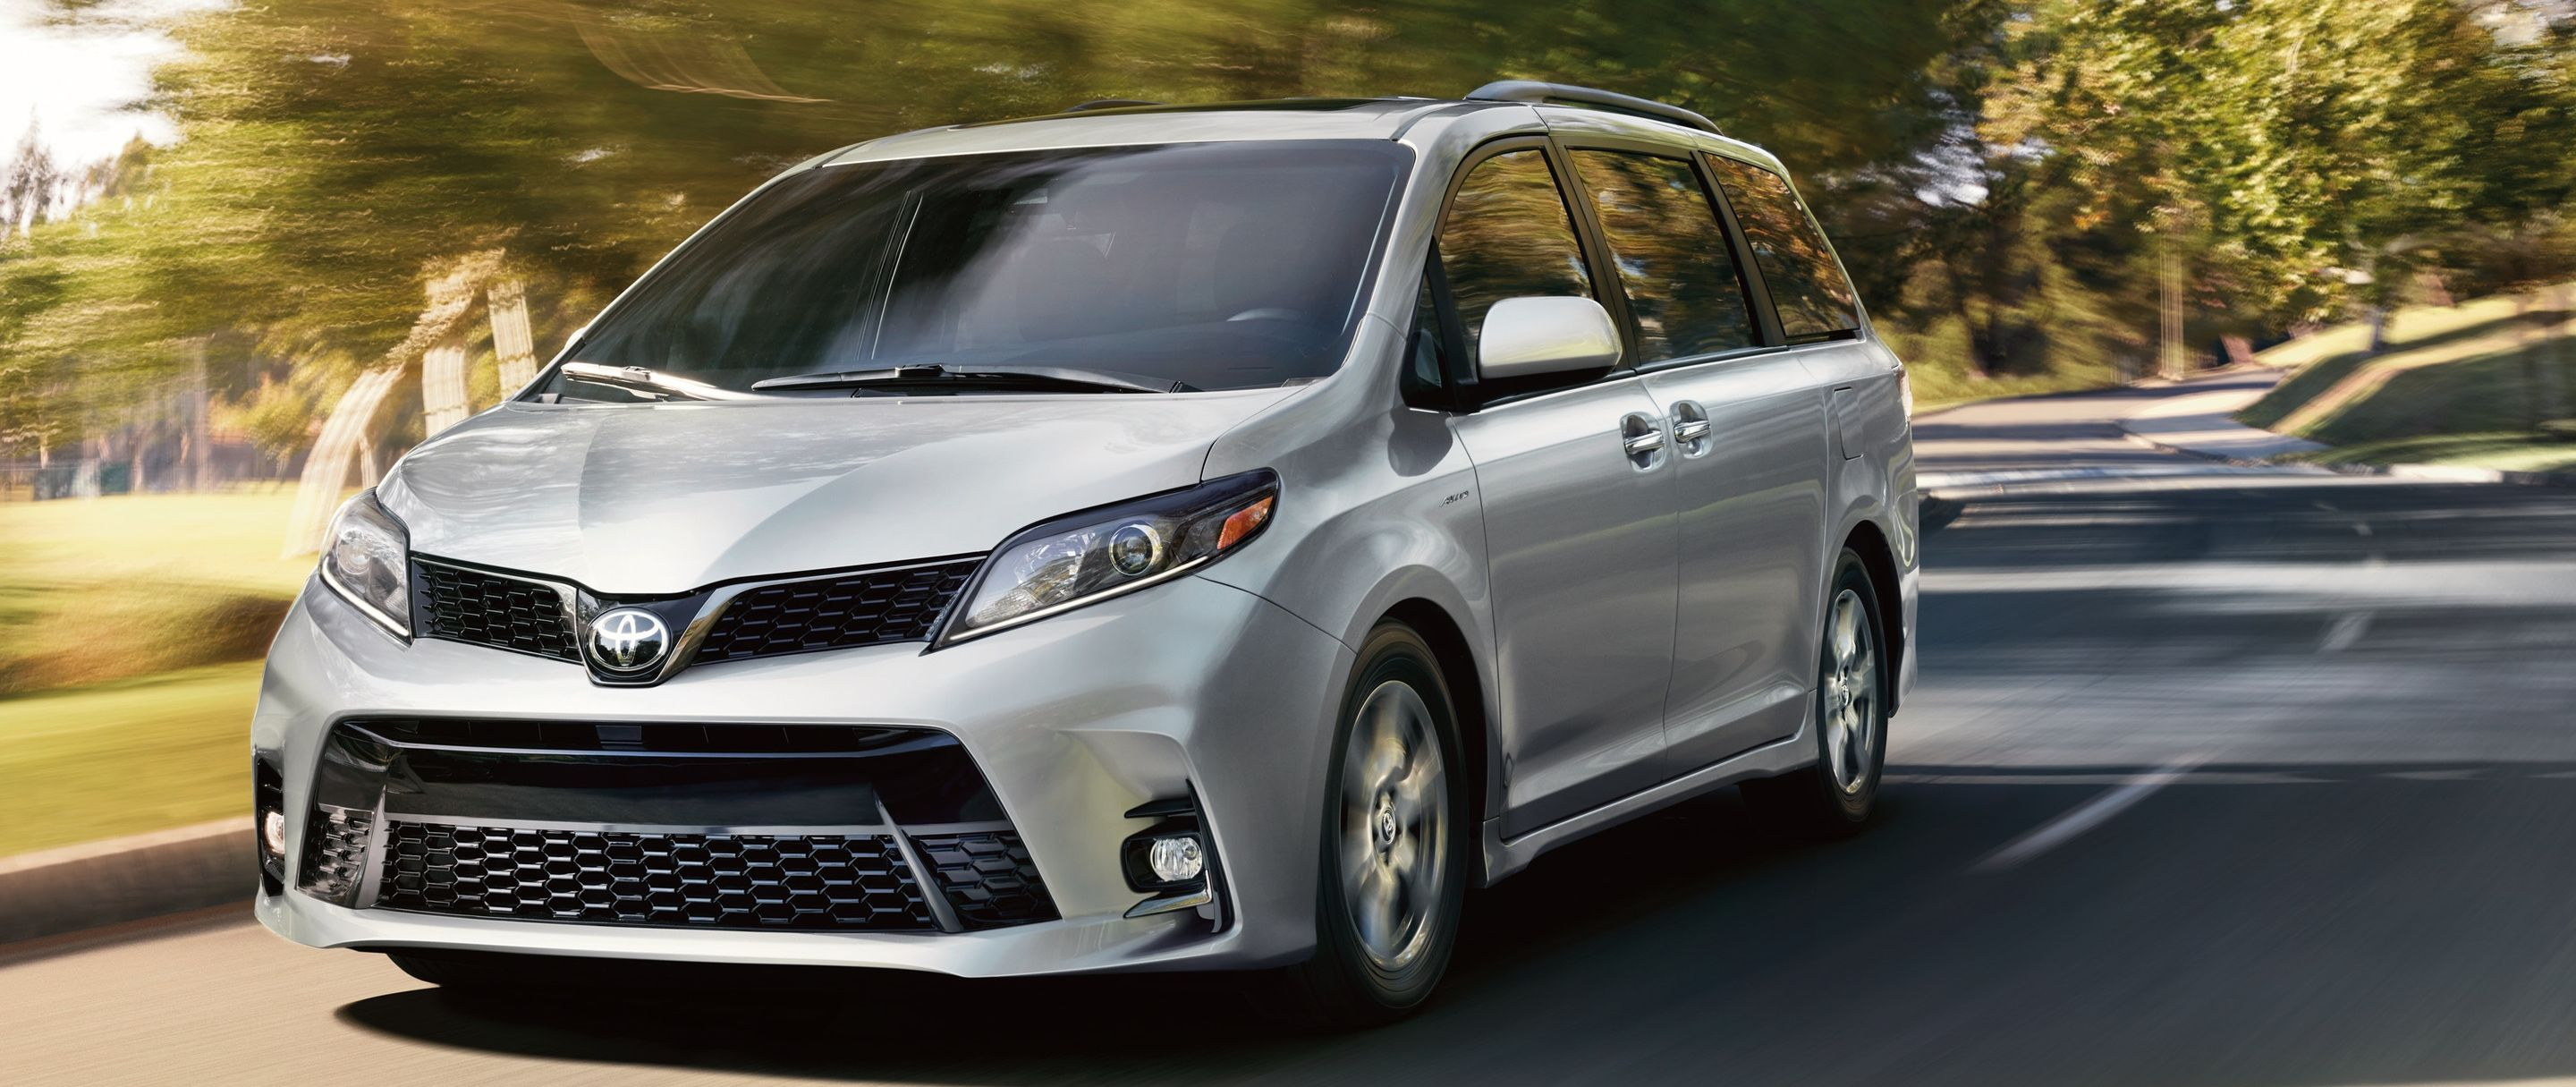 2020 Toyota Sienna for Sale near Kent, OH